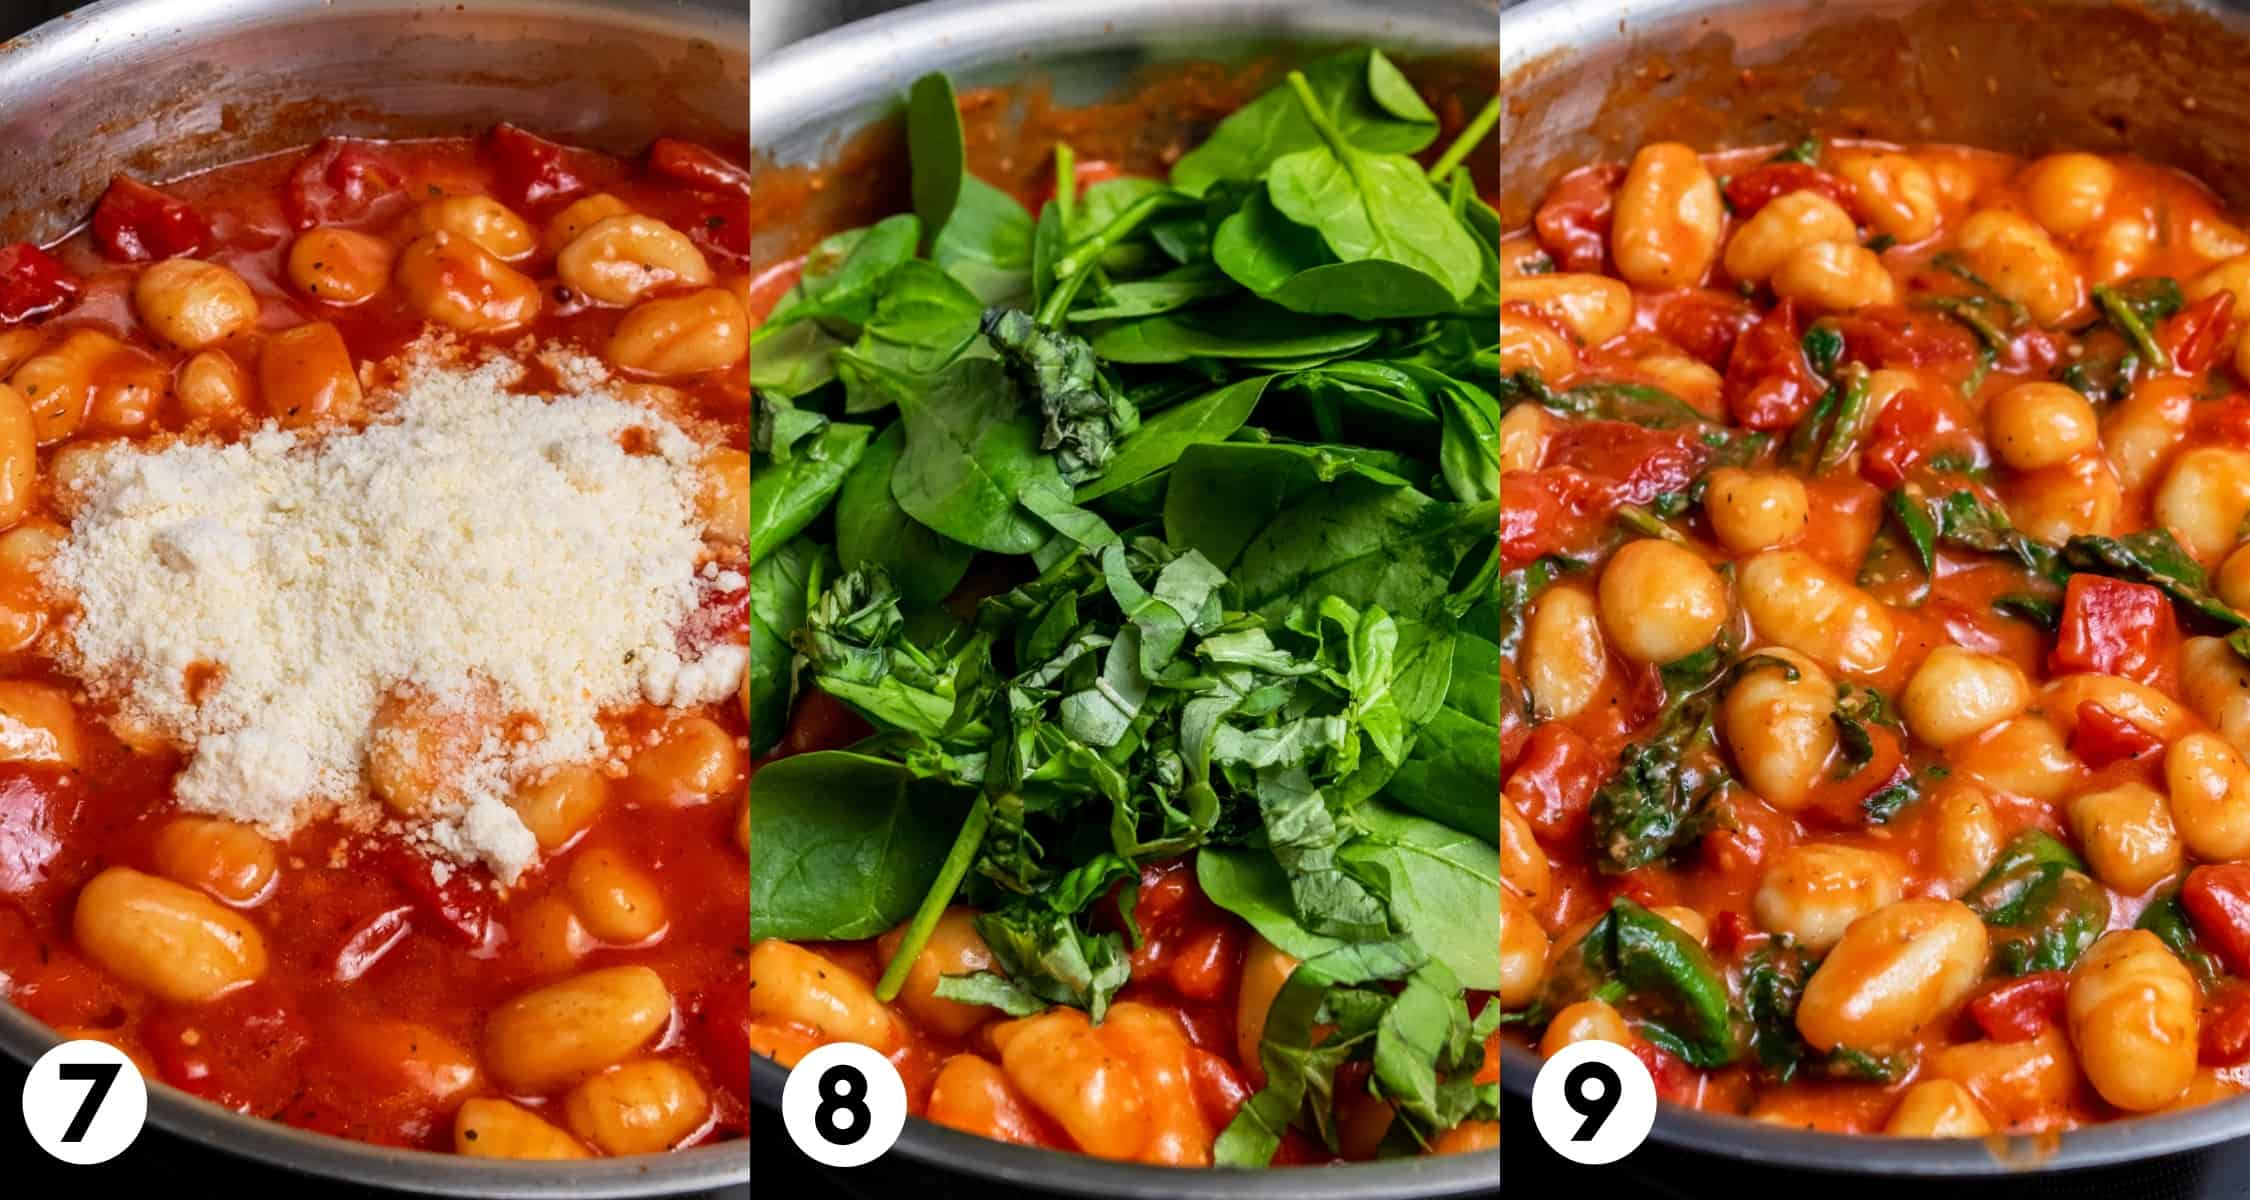 Parmesan and spinach added to the skillet of gnocchi.